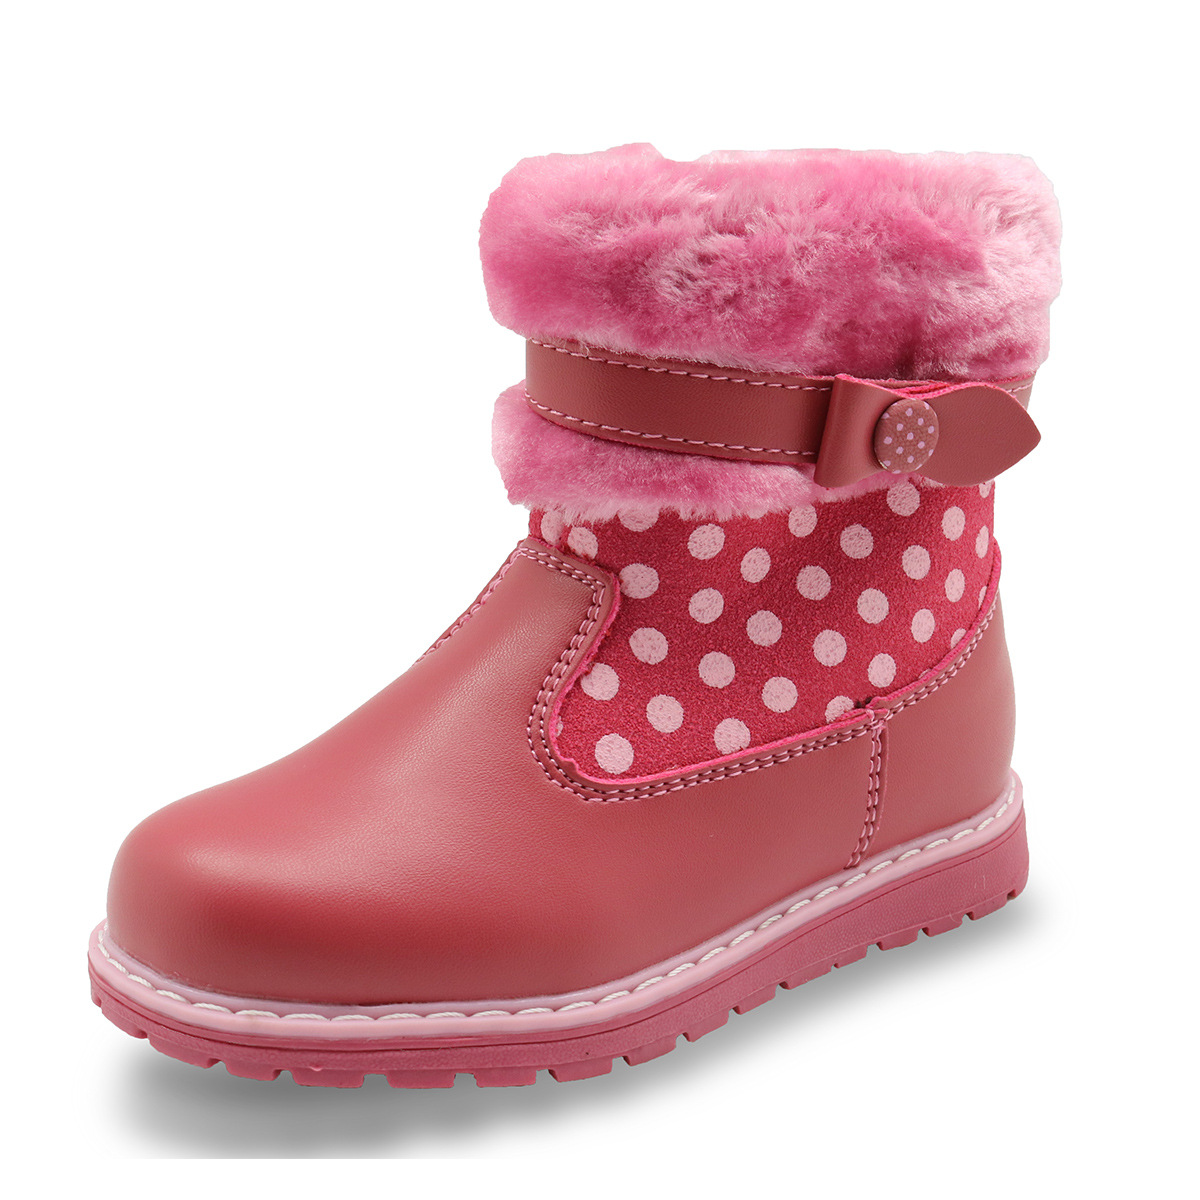 2017 New Autumn Spring Kids Girls Shoes  Fashion  Russia Speckled Girls Warm Boots Dots PU Leather Boots Kids Boots<br>